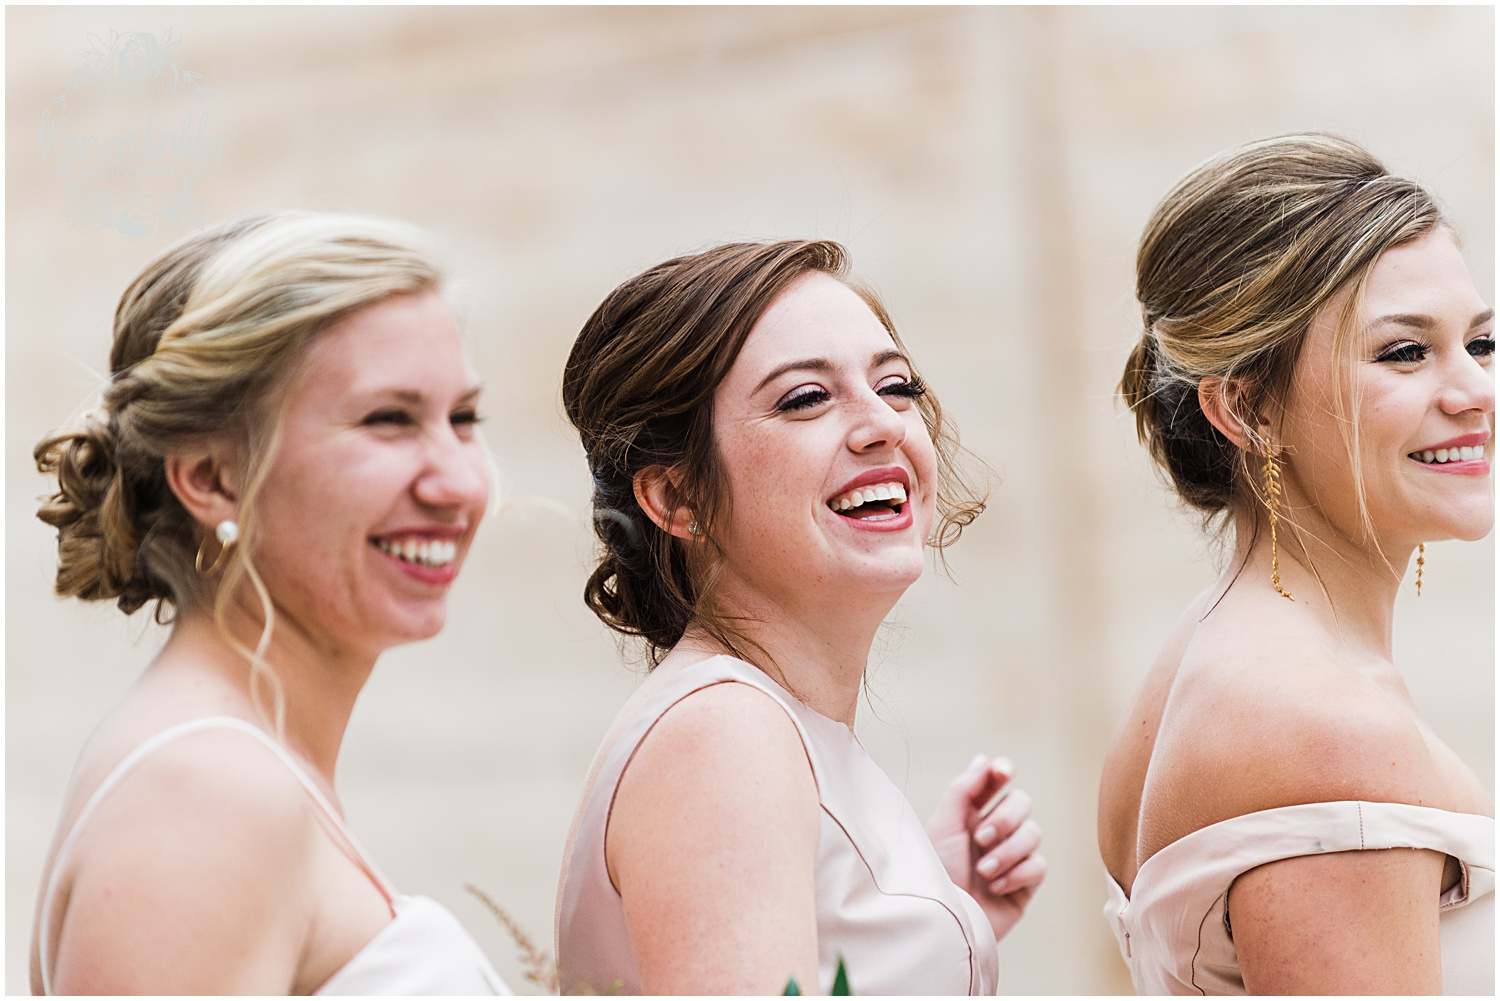 ABBY & CHARLIE WEDDING | THE HUDSON EVENT SPACE WEDDING | MARISSA CRIBBS PHOTOGRAPHY_7520.jpg